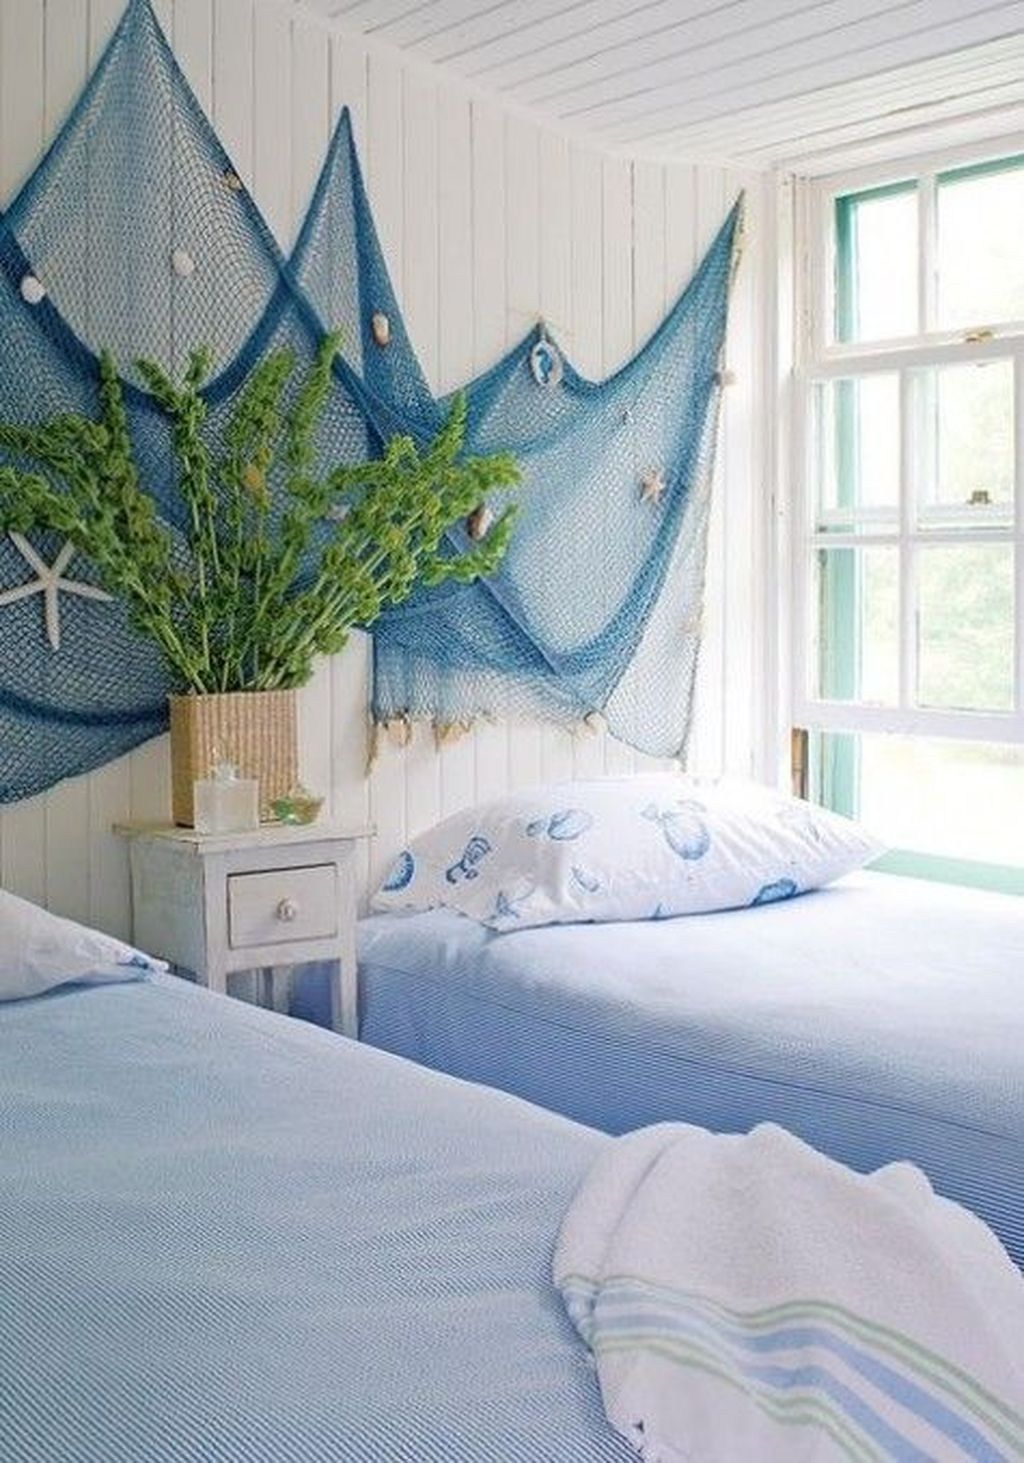 Lovely Lake Bedroom Decorating Ideas 11